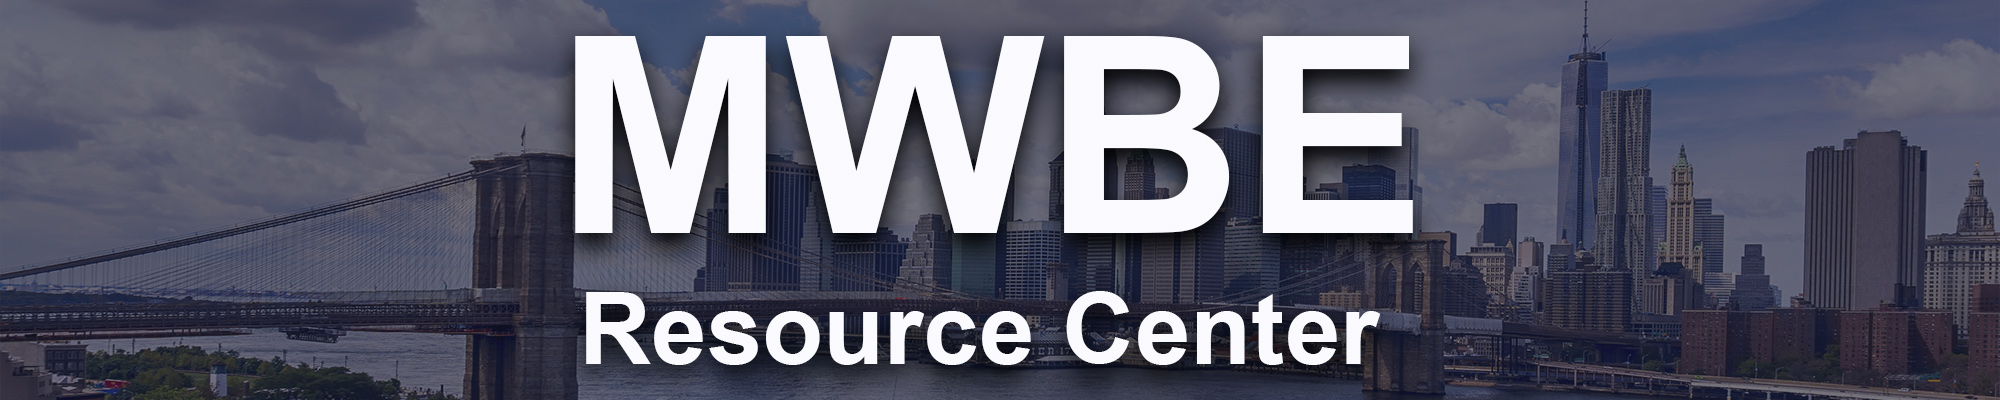 MWBE Resource Center